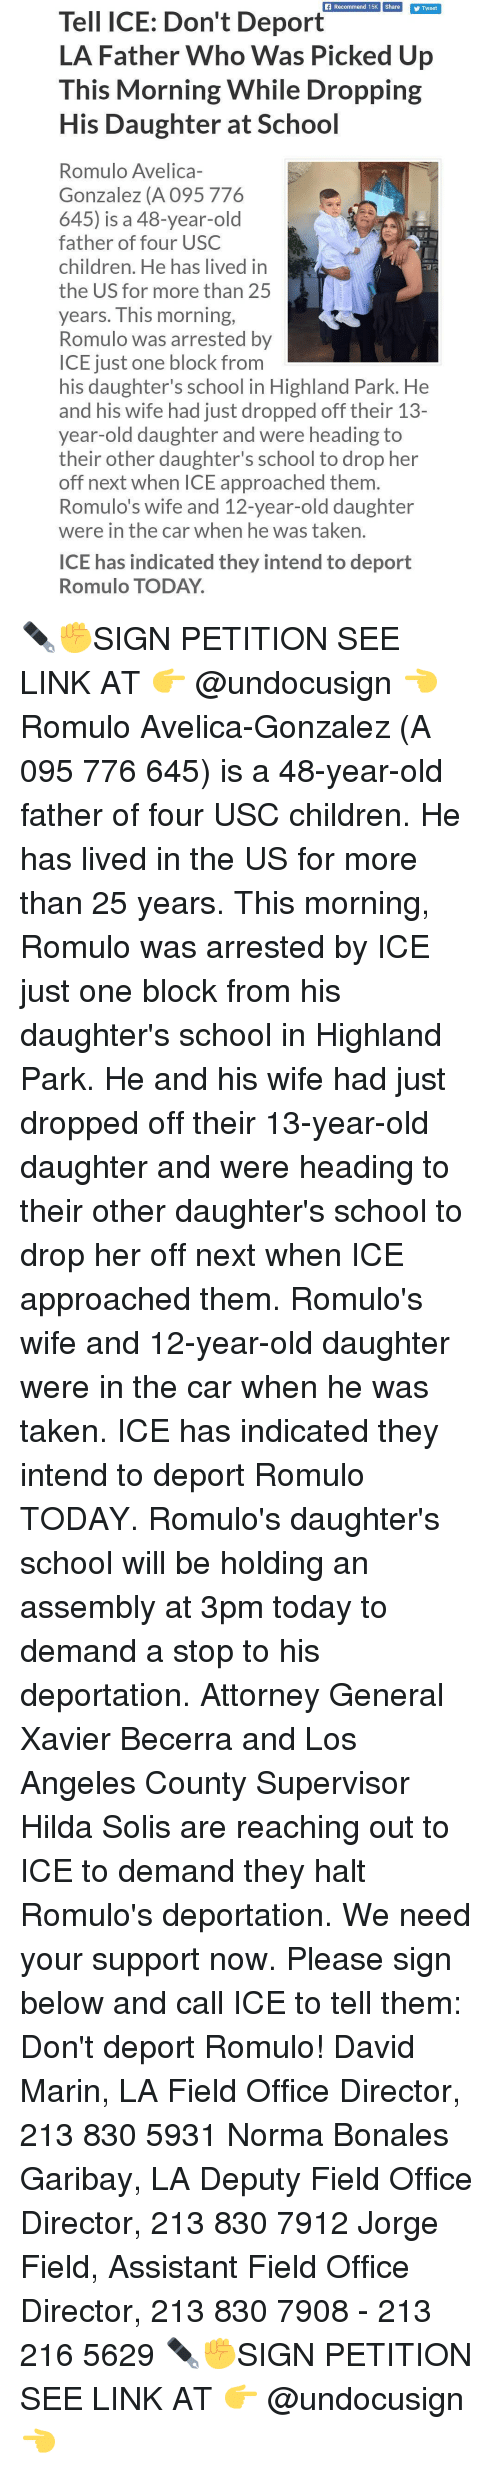 mariners: Recommend 15K Share  Tweet  Tell ICE: Don't Deport  LA Father Who Was Picked Up  This Morning While Dropping  His Daughter at School  Romulo Avelica-  Gonzalez (A 095 776  645) is a 48-year-old  father of four USC  children. He has lived in  the US for more than 25  years. This morning,  Romulo was arrested by  ICE just one block from  his daughter's school in Highland Park. He  and his wife had just dropped off their 13-  year-old daughter and were heading to  their other daughter's school to drop her  off next when ICE approached them  Romulo's wife and 12-year-old daughter  were in the car when he was taken.  ICE has indicated they intend to deport  Romulo TODAY. ✒✊SIGN PETITION SEE LINK AT 👉 @undocusign 👈 Romulo Avelica-Gonzalez (A 095 776 645) is a 48-year-old father of four USC children. He has lived in the US for more than 25 years. This morning, Romulo was arrested by ICE just one block from his daughter's school in Highland Park. He and his wife had just dropped off their 13-year-old daughter and were heading to their other daughter's school to drop her off next when ICE approached them. Romulo's wife and 12-year-old daughter were in the car when he was taken. ICE has indicated they intend to deport Romulo TODAY. Romulo's daughter's school will be holding an assembly at 3pm today to demand a stop to his deportation. Attorney General Xavier Becerra and Los Angeles County Supervisor Hilda Solis are reaching out to ICE to demand they halt Romulo's deportation. We need your support now. Please sign below and call ICE to tell them: Don't deport Romulo! David Marin, LA Field Office Director, 213 830 5931 Norma Bonales Garibay, LA Deputy Field Office Director, 213 830 7912 Jorge Field, Assistant Field Office Director, 213 830 7908 - 213 216 5629 ✒✊SIGN PETITION SEE LINK AT 👉 @undocusign 👈